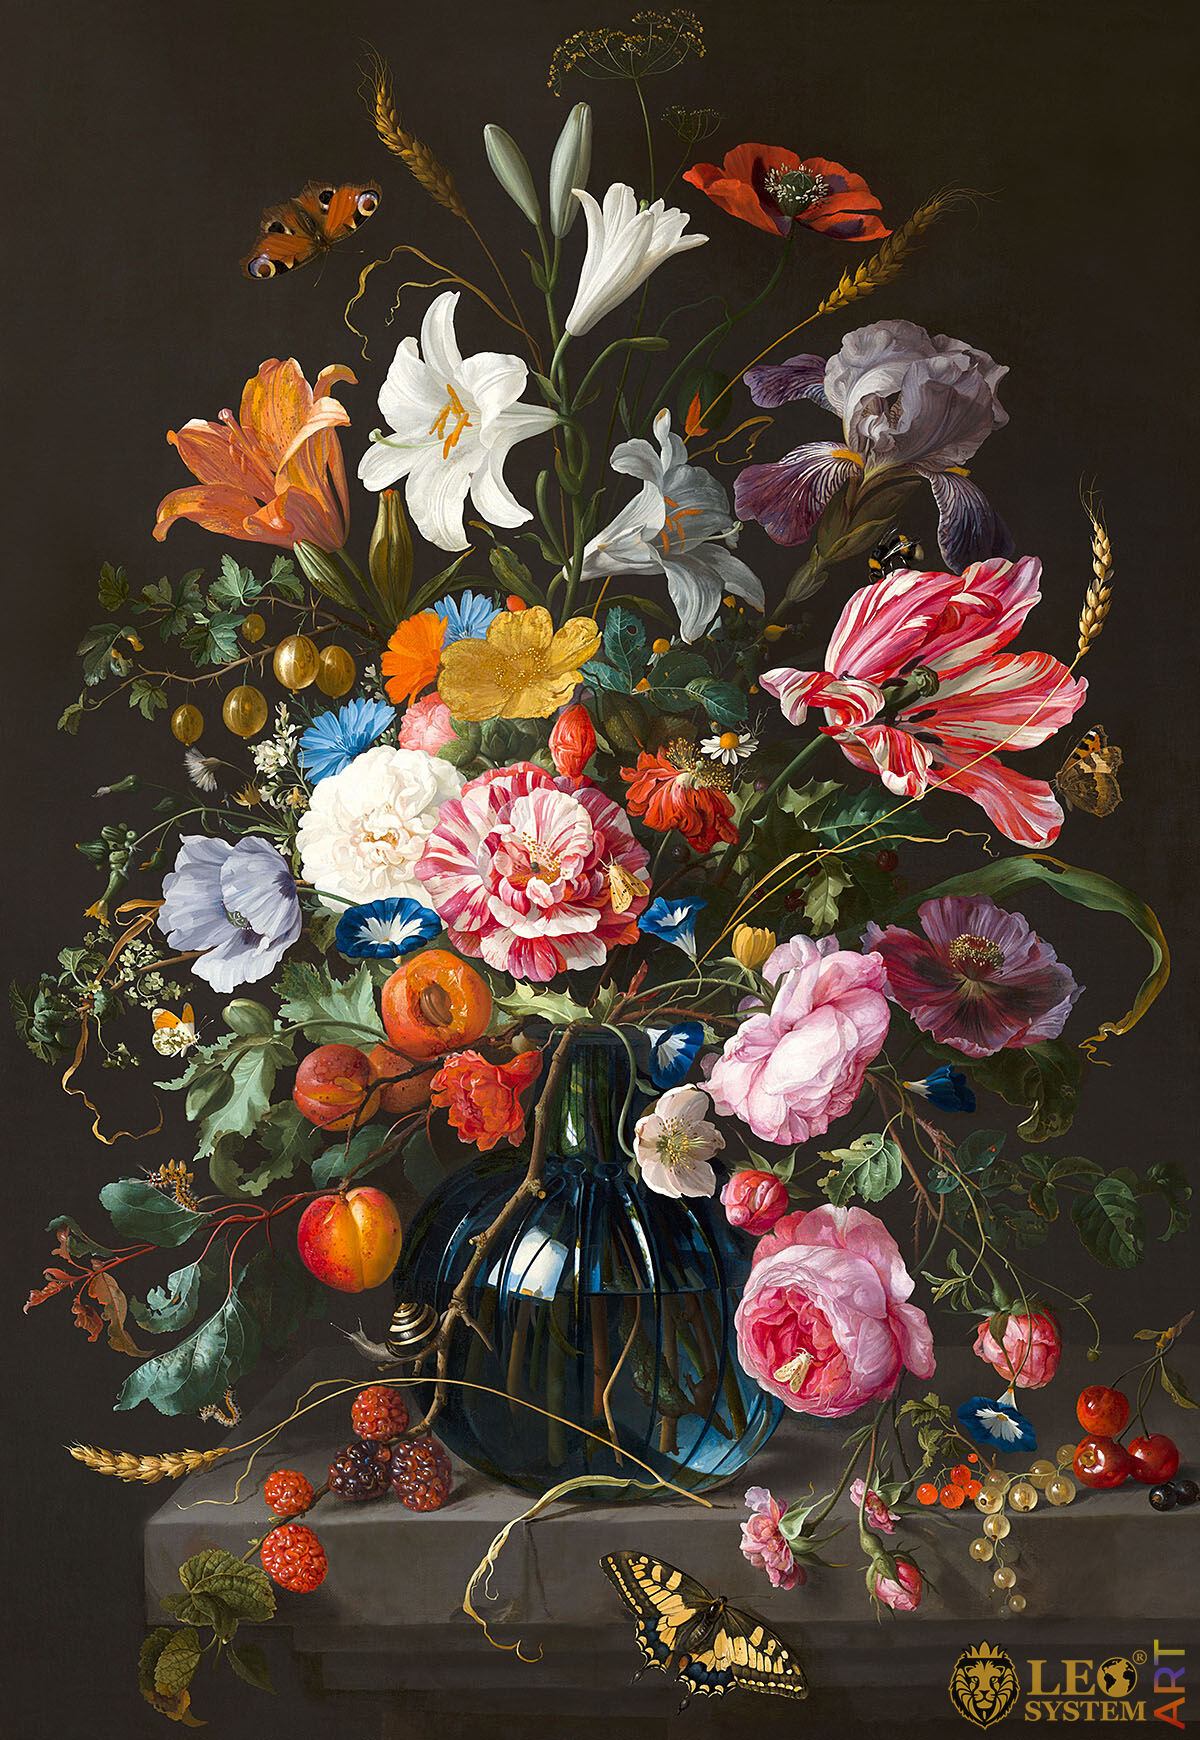 Original painting with a flower arrangement in a vase